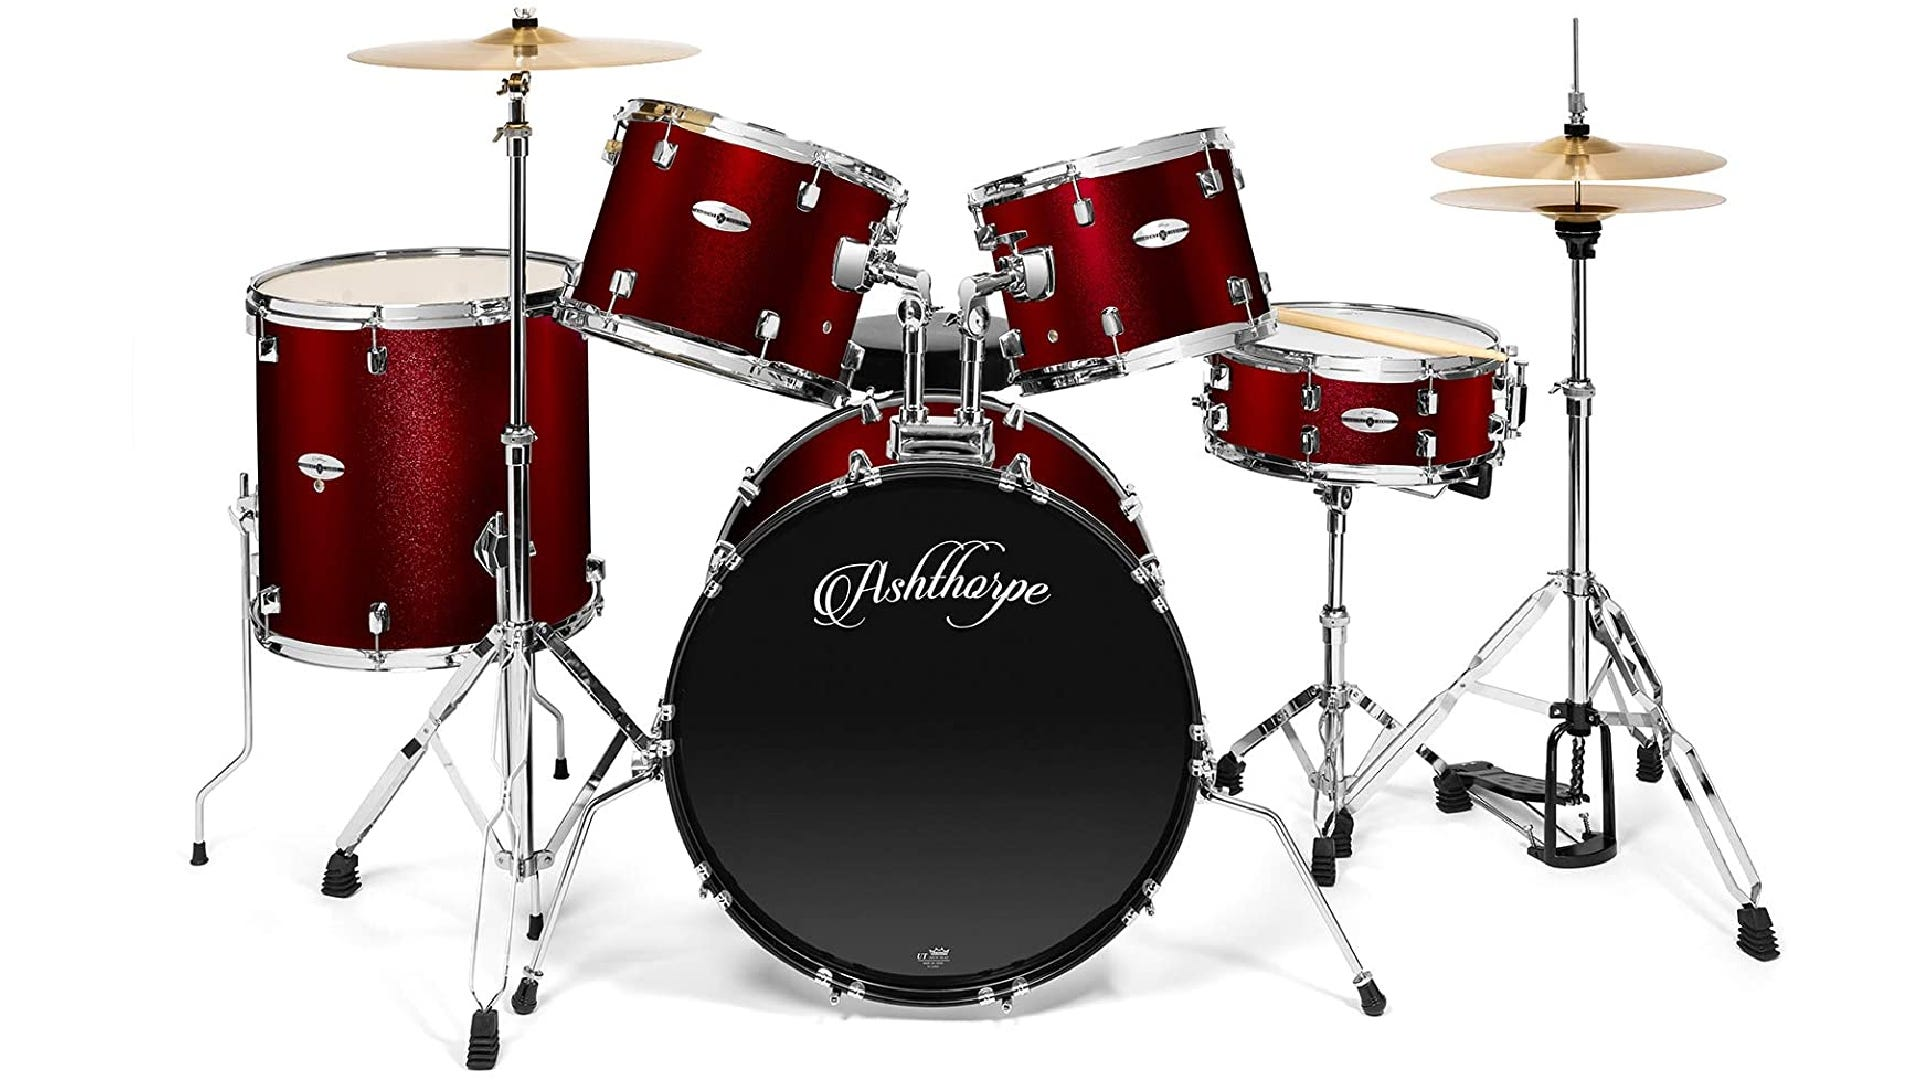 front-side view of red-colored drum set with bass drum, snare drum, two mounted toms, floor tom, hi-hat, and crash.